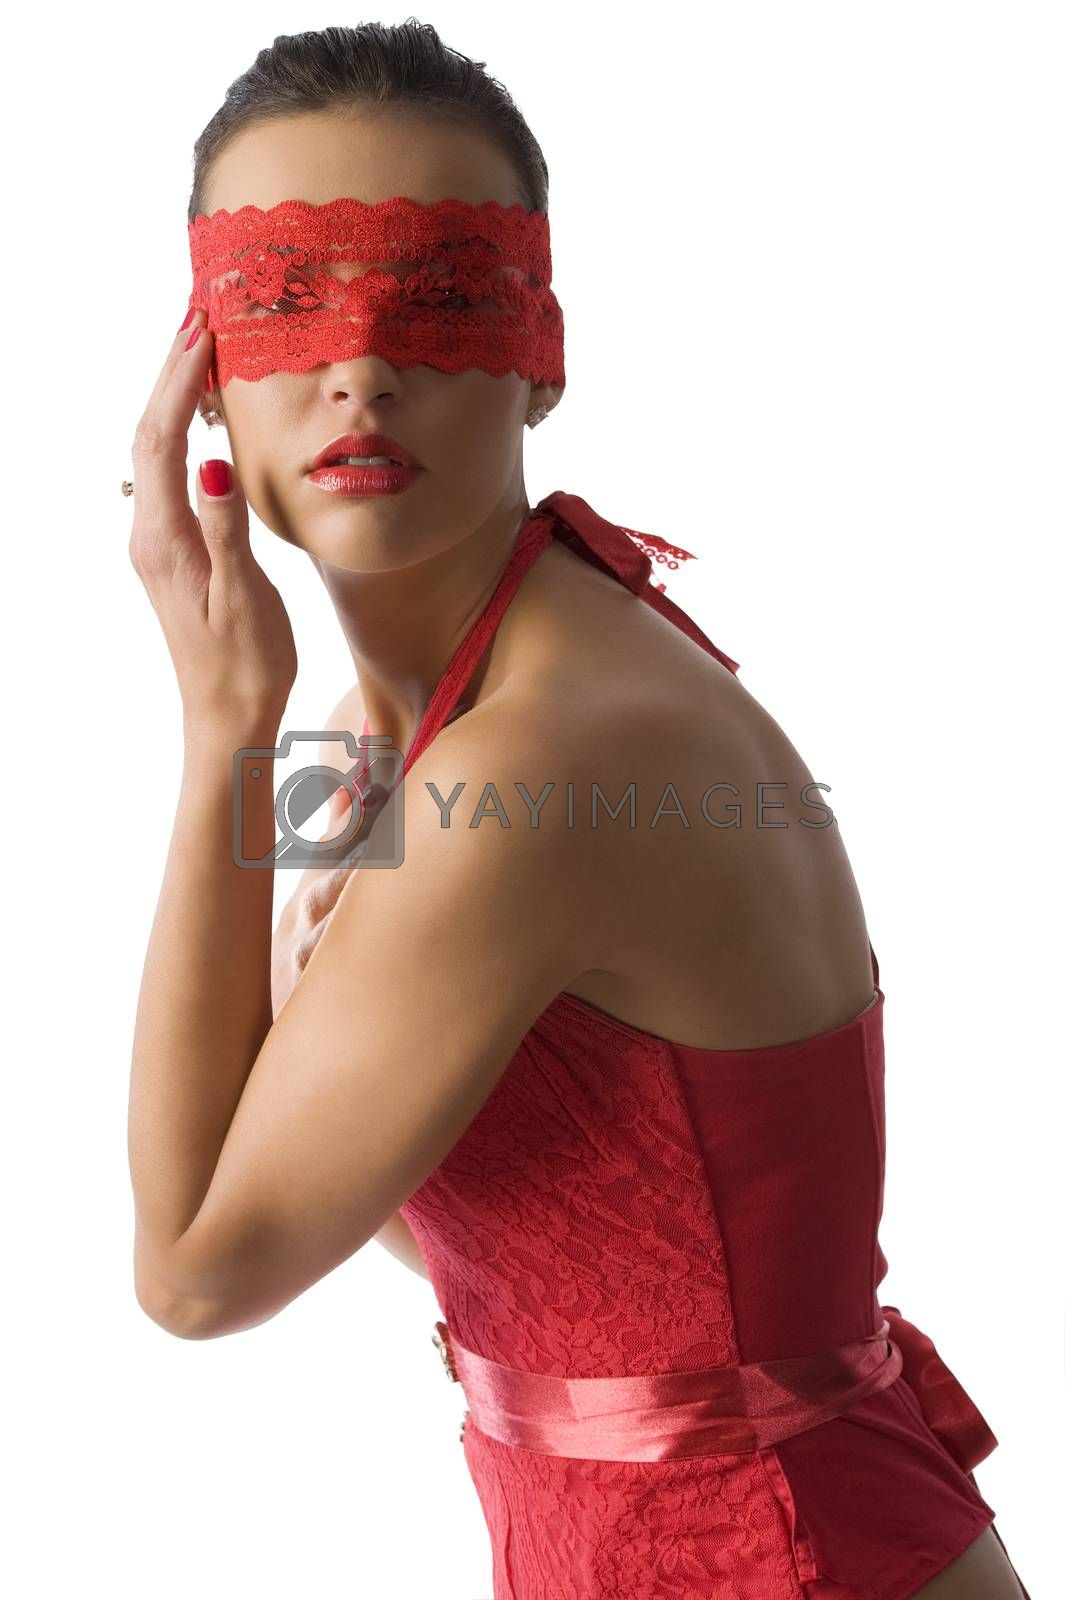 Royalty free image of red lace mask by fotoCD